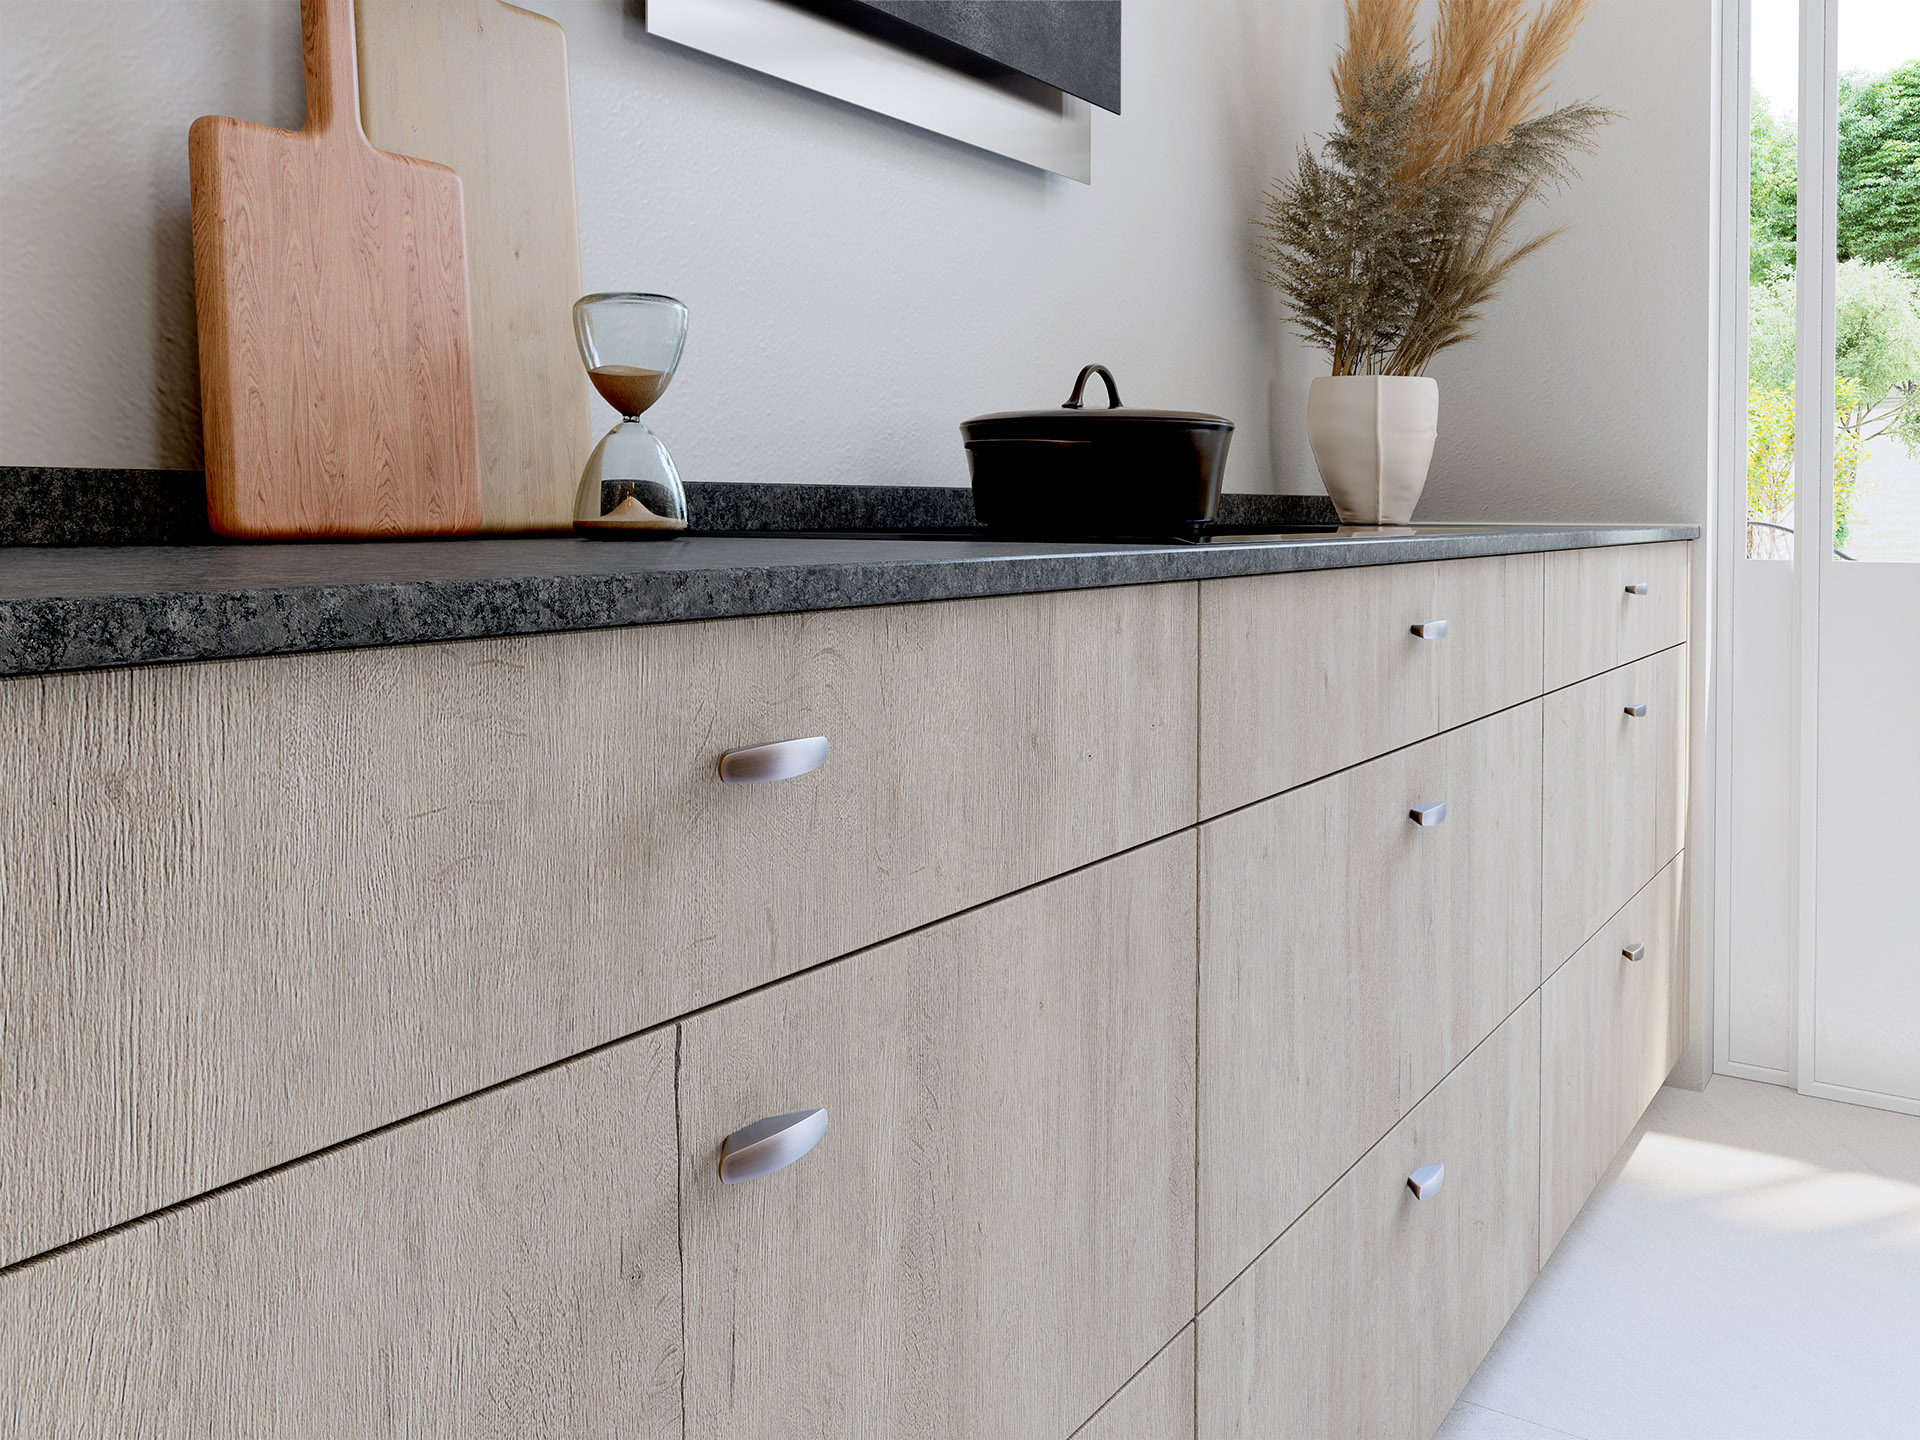 3D image of modern wooden kitchen cabinets